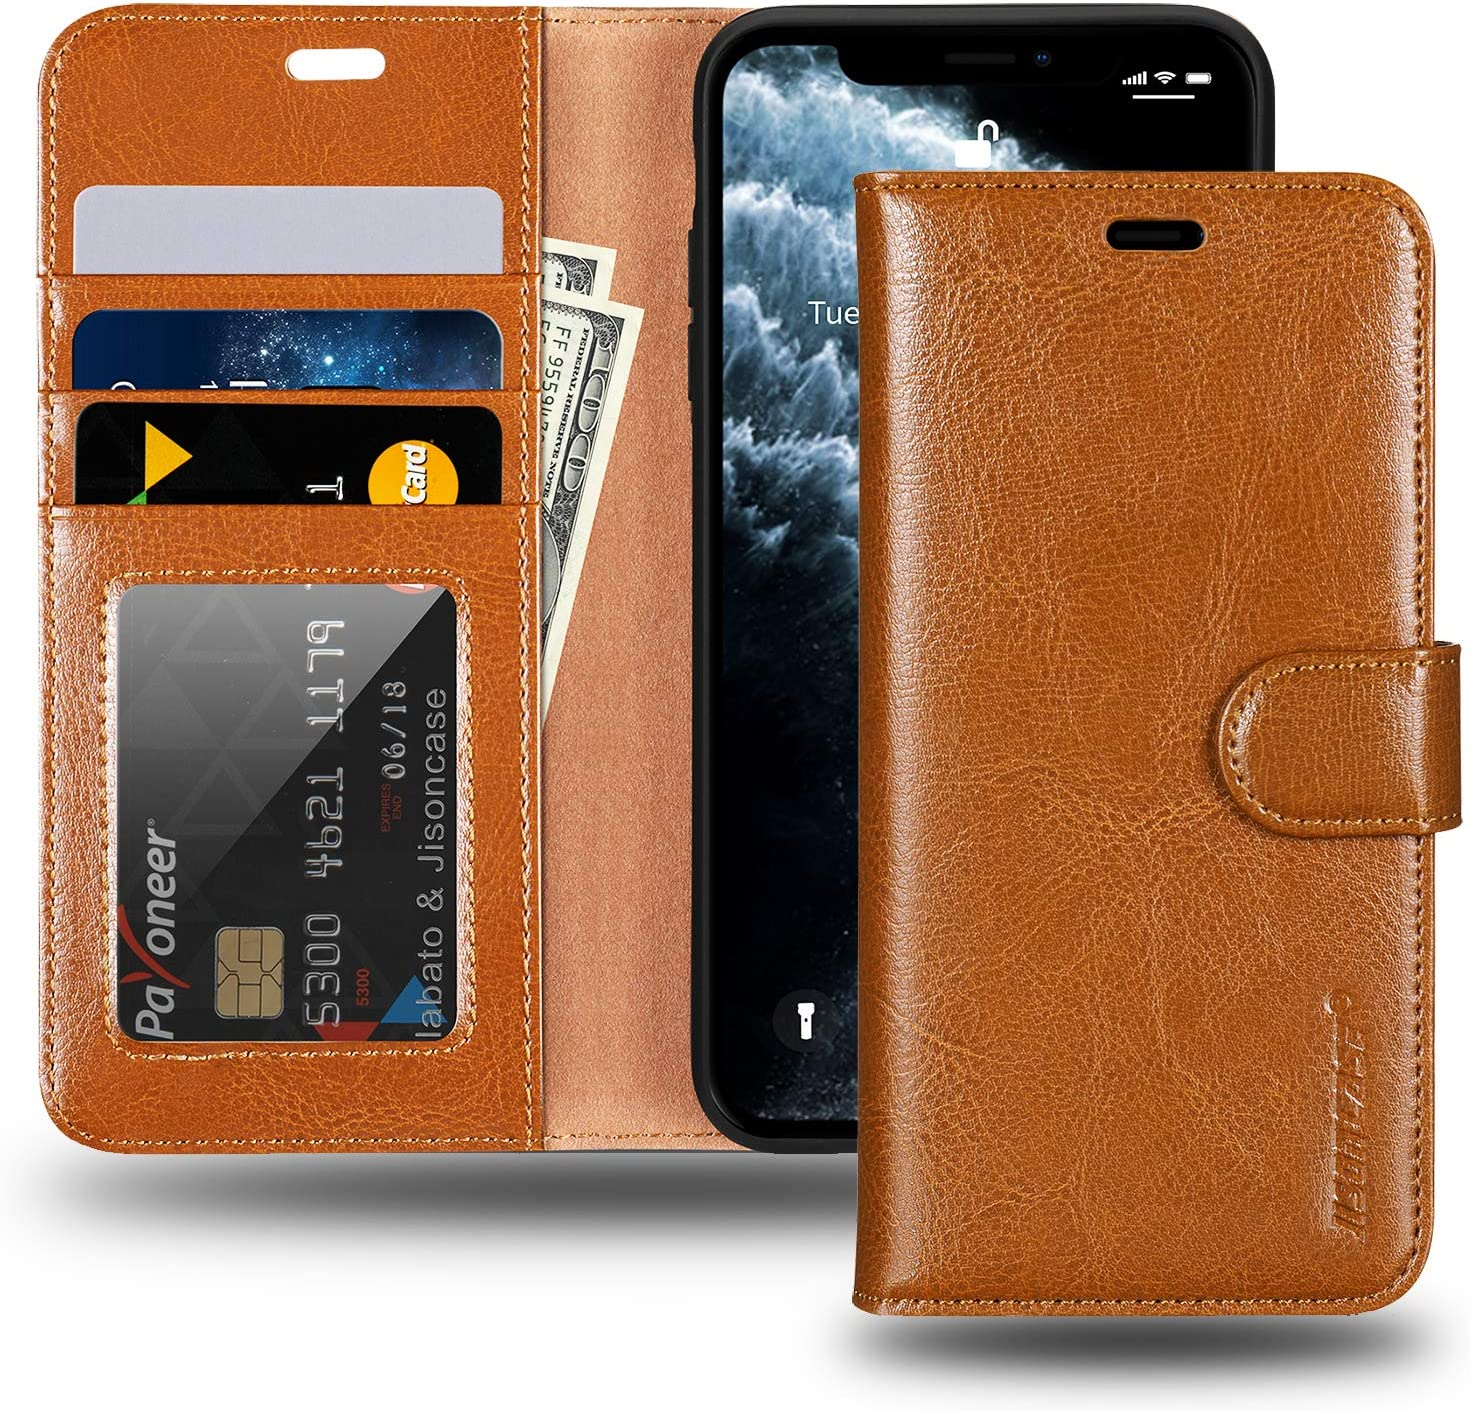 JISONCASE iPhone 11 Wallet Case, Anti-Slip Genuine Leather iPhone 11 Wallet Case with Cards Holder & Magnetic & RFID Blocking, Protective Cover Flip Case for Apple iPhone 11-(6.1 inch, Brown)